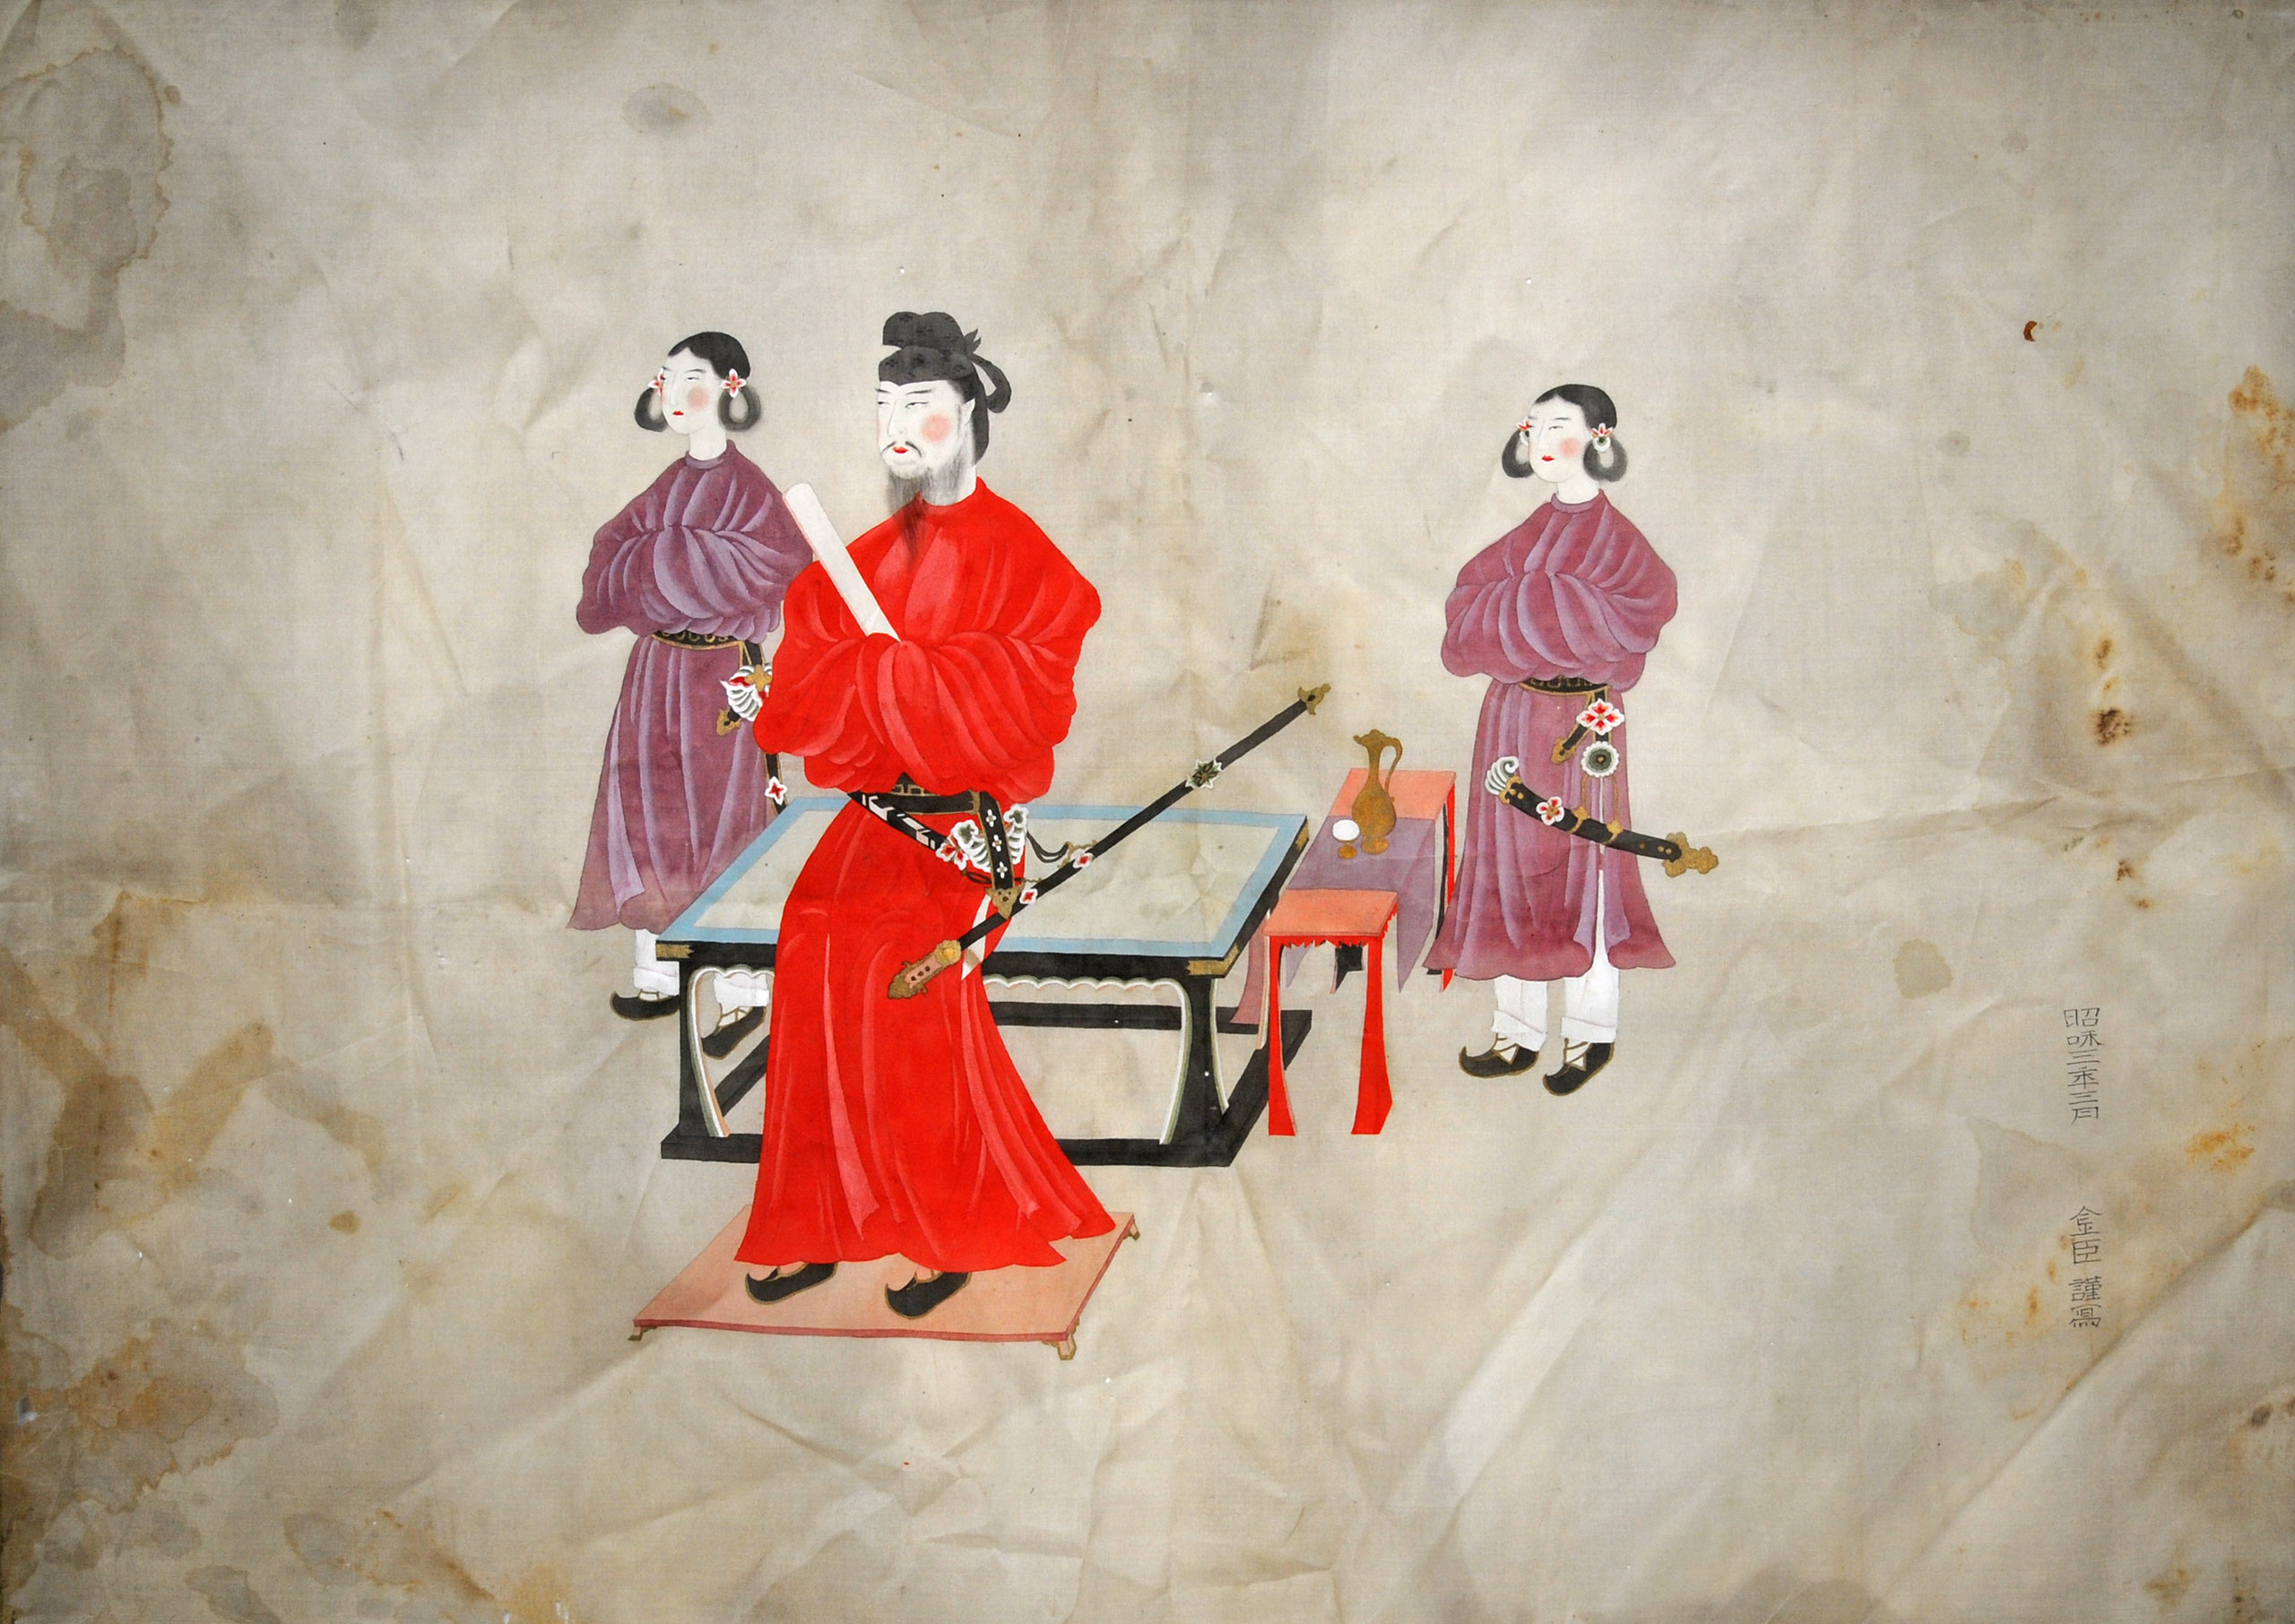 聖徳太子二童子像* - Portrait of Prince Shotoku